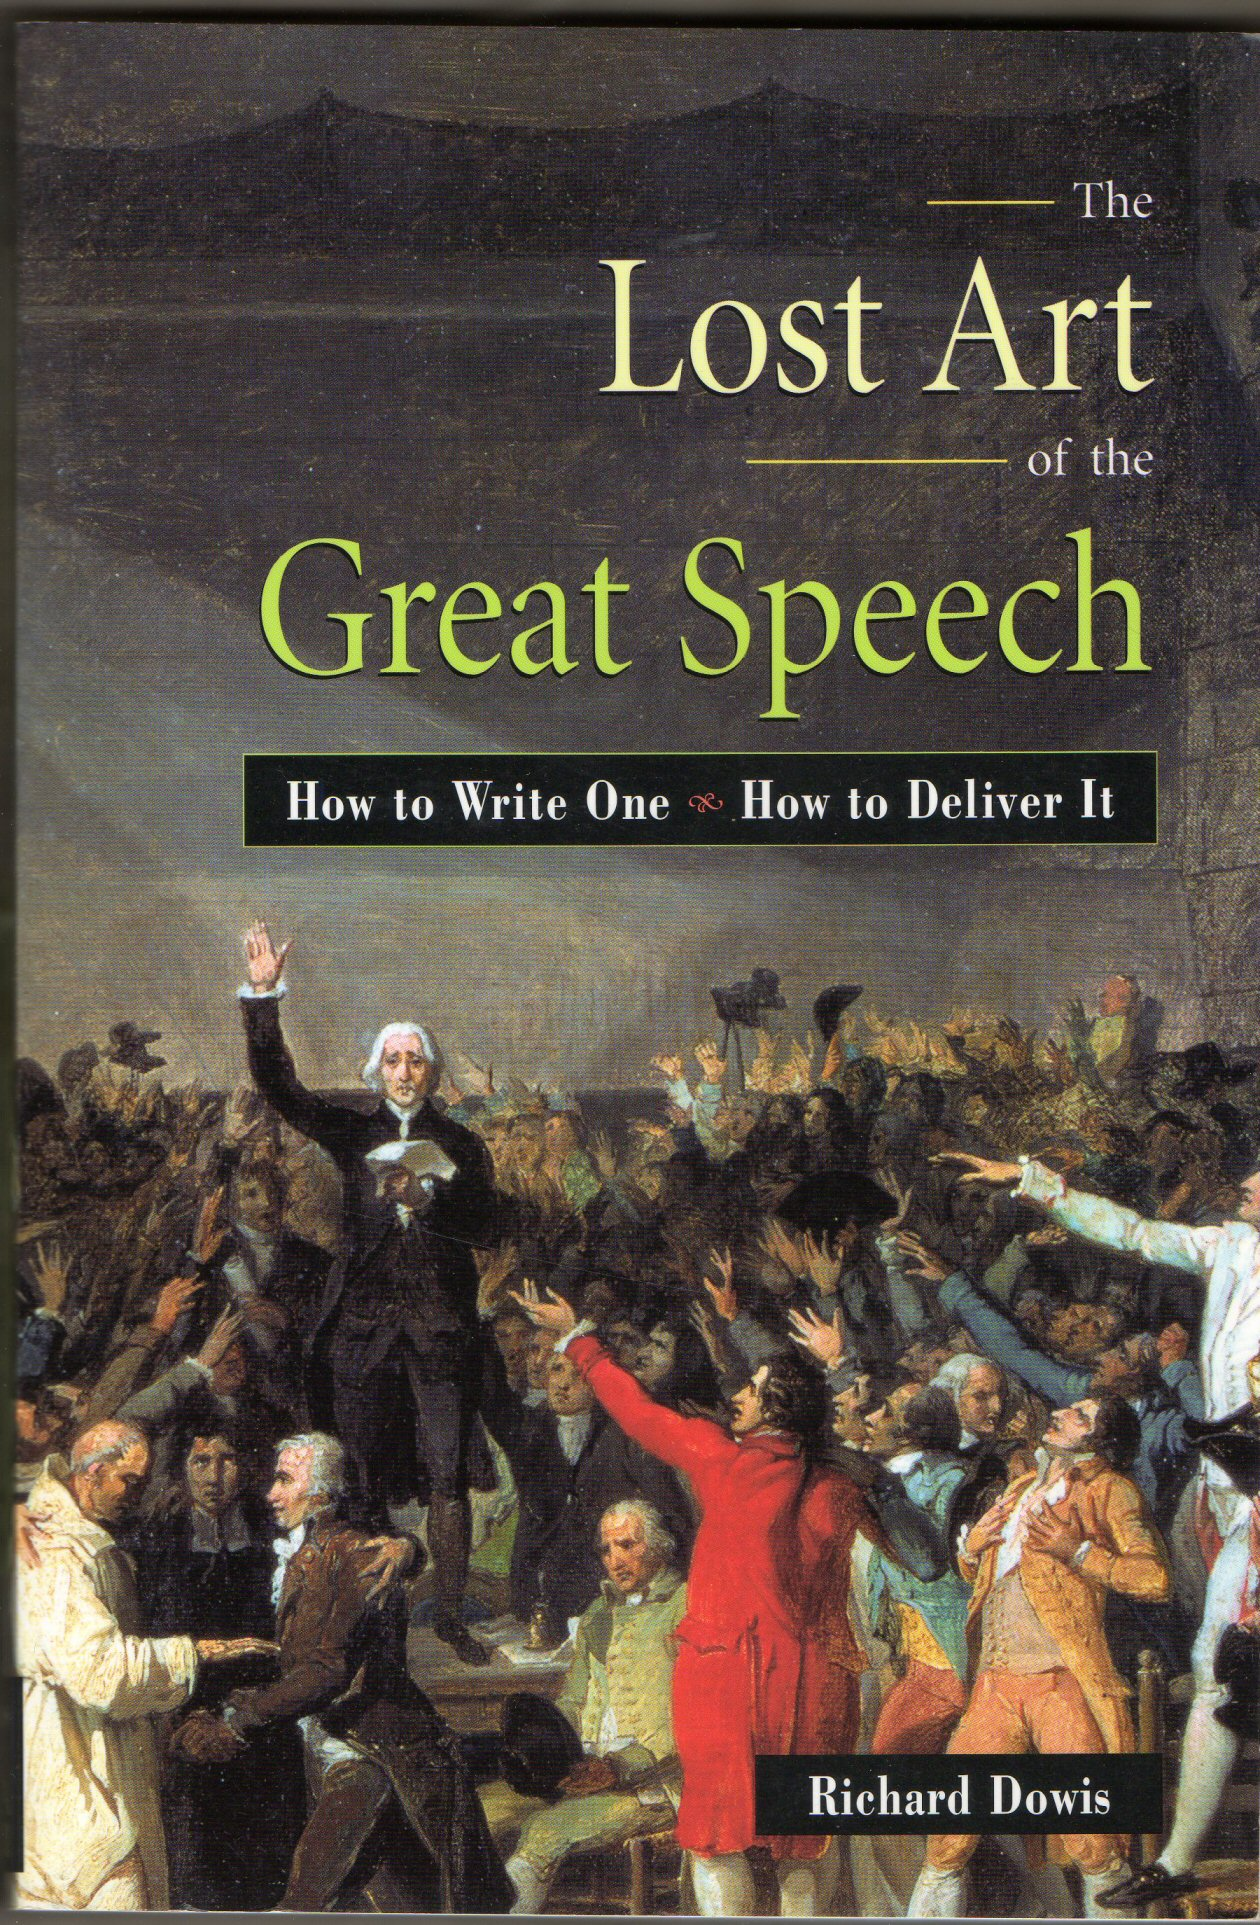 Lost Art of the Great Speech